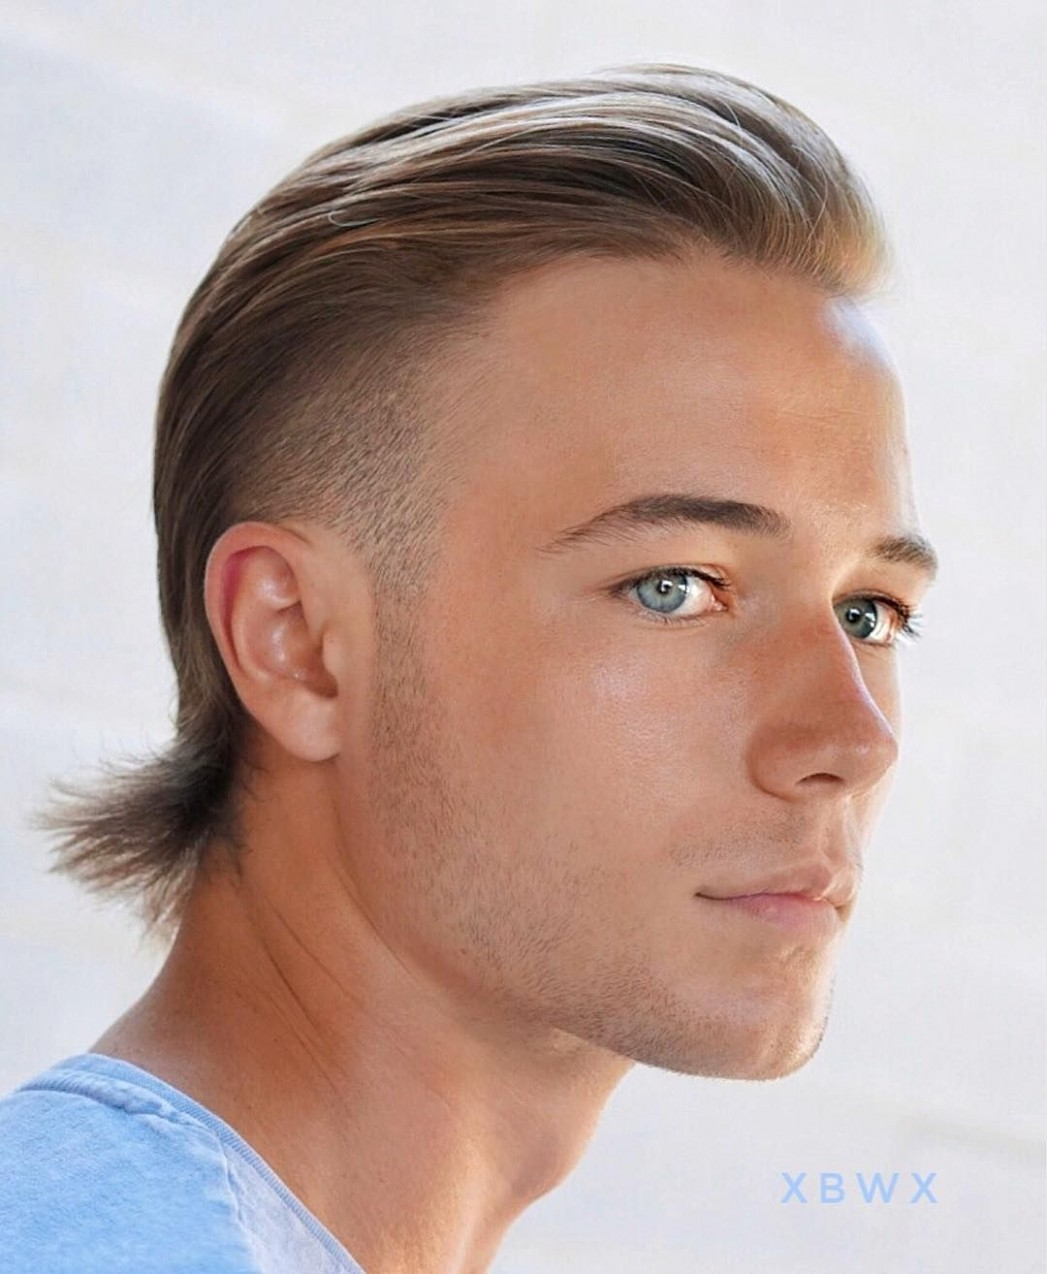 9 Mullet Haircuts That Are Awesome: Super Cool Modern For 9 Mullet Hairstyle